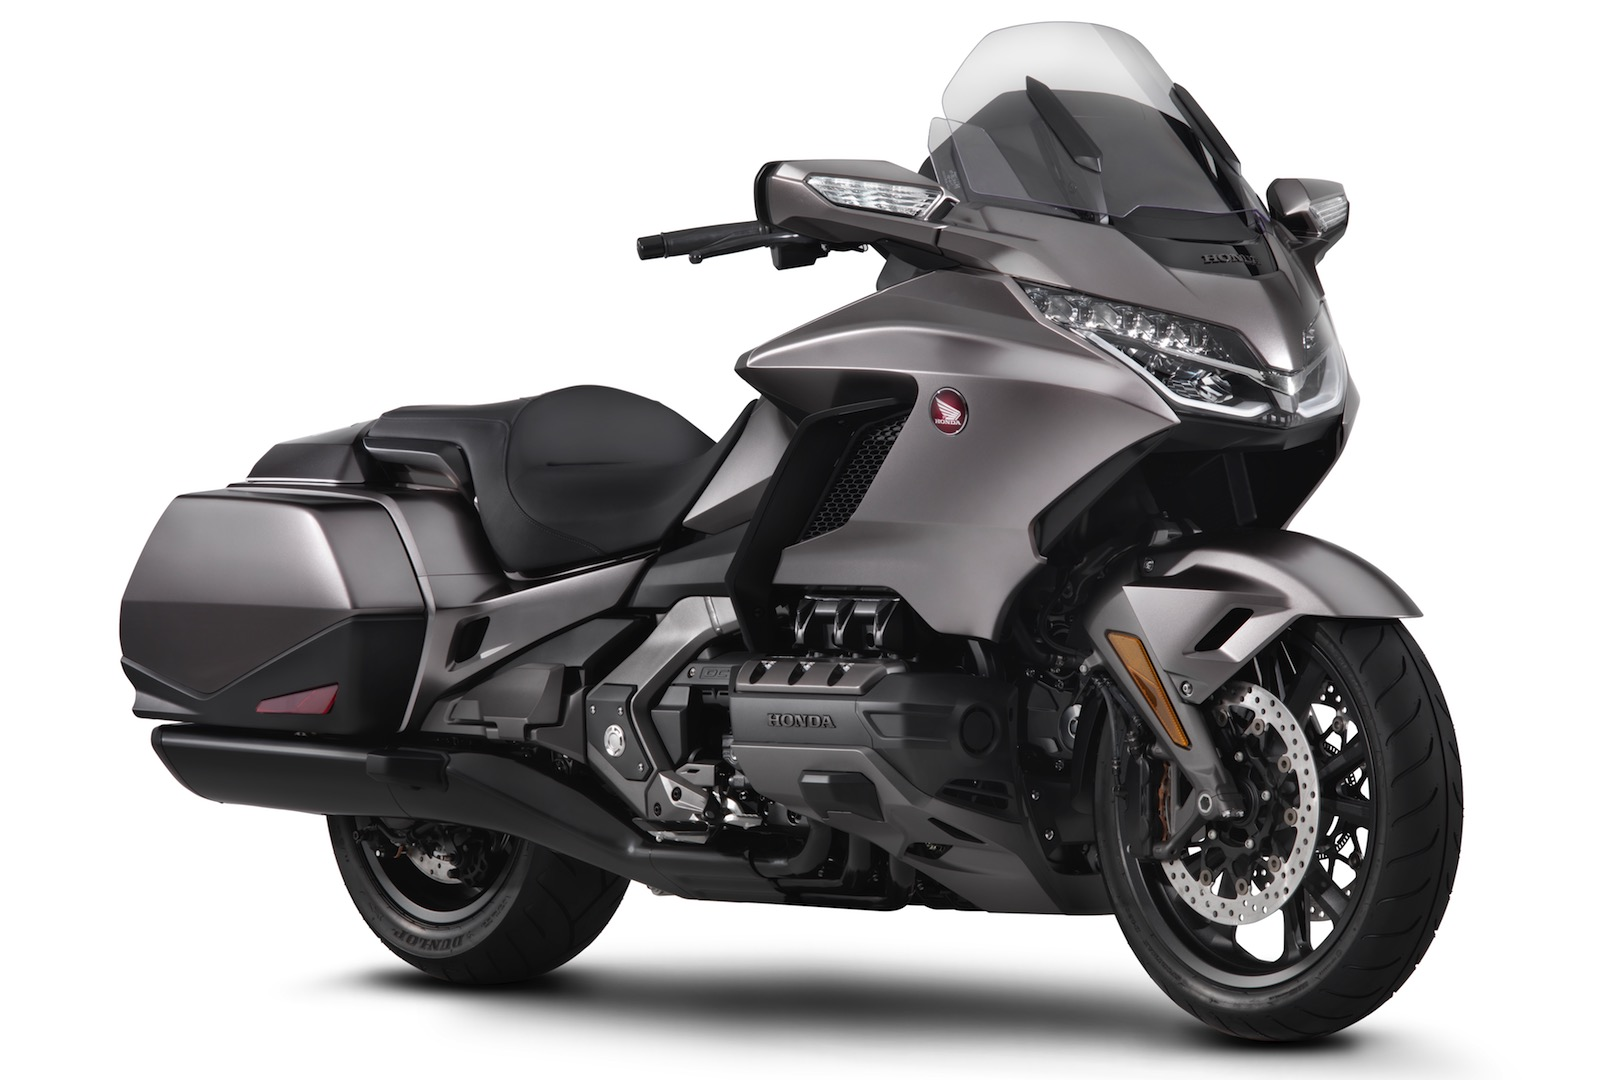 2018 Honda Gold Wing price